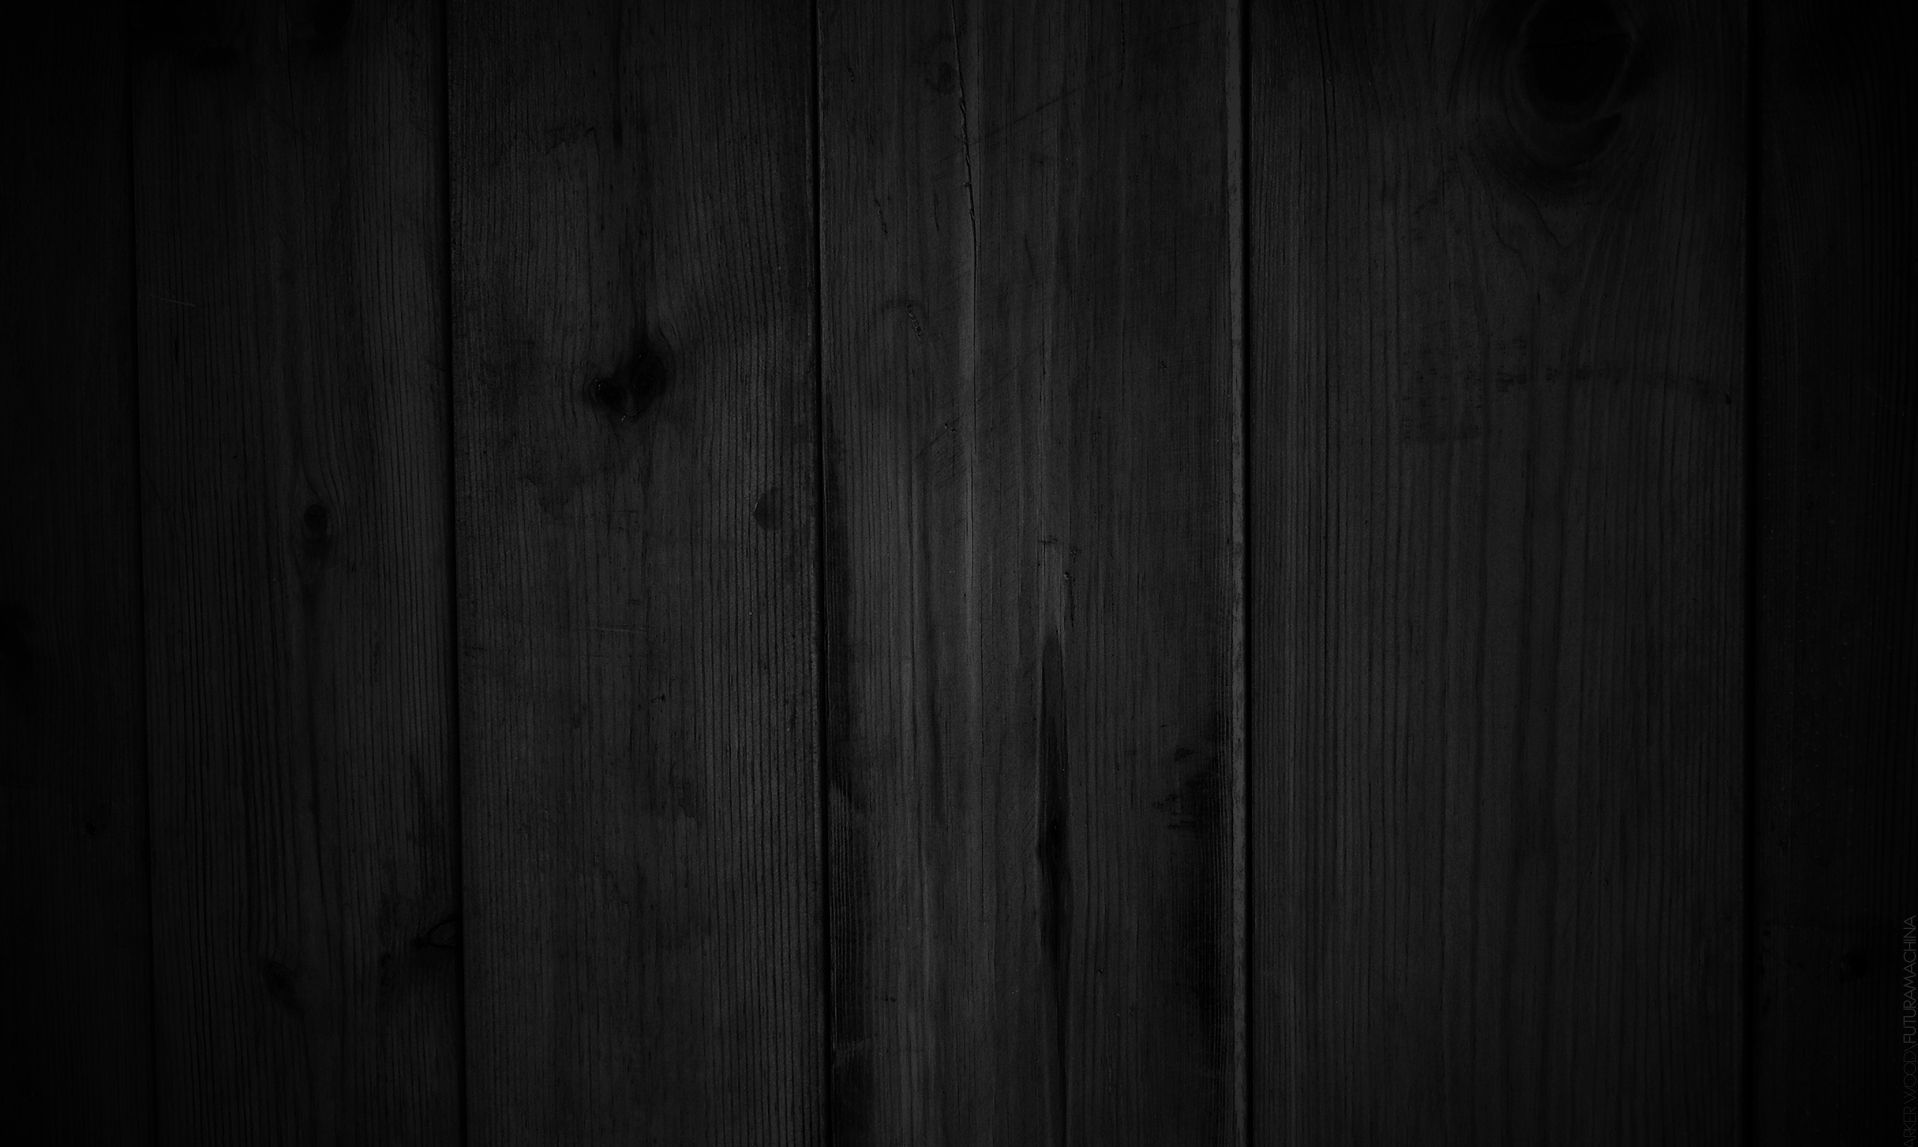 Dark wooden boards texture background, wood